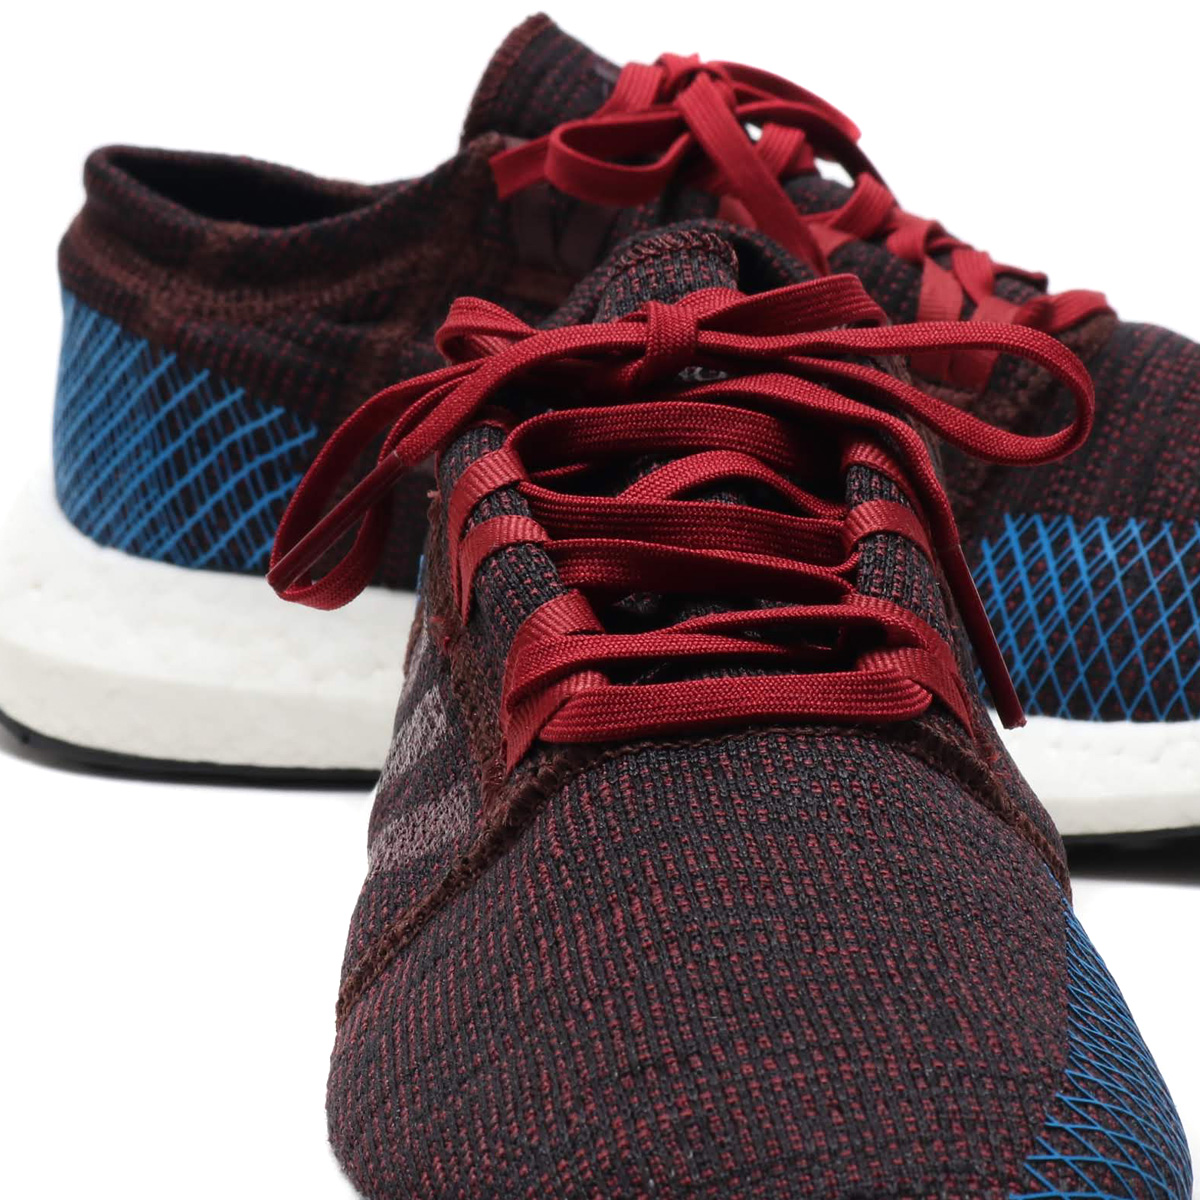 4ee3bb8e1d900 adidas PureBOOST GO (Adidas pure boost GO) knight red   Noble Marron F18   blight blue 18FW-I